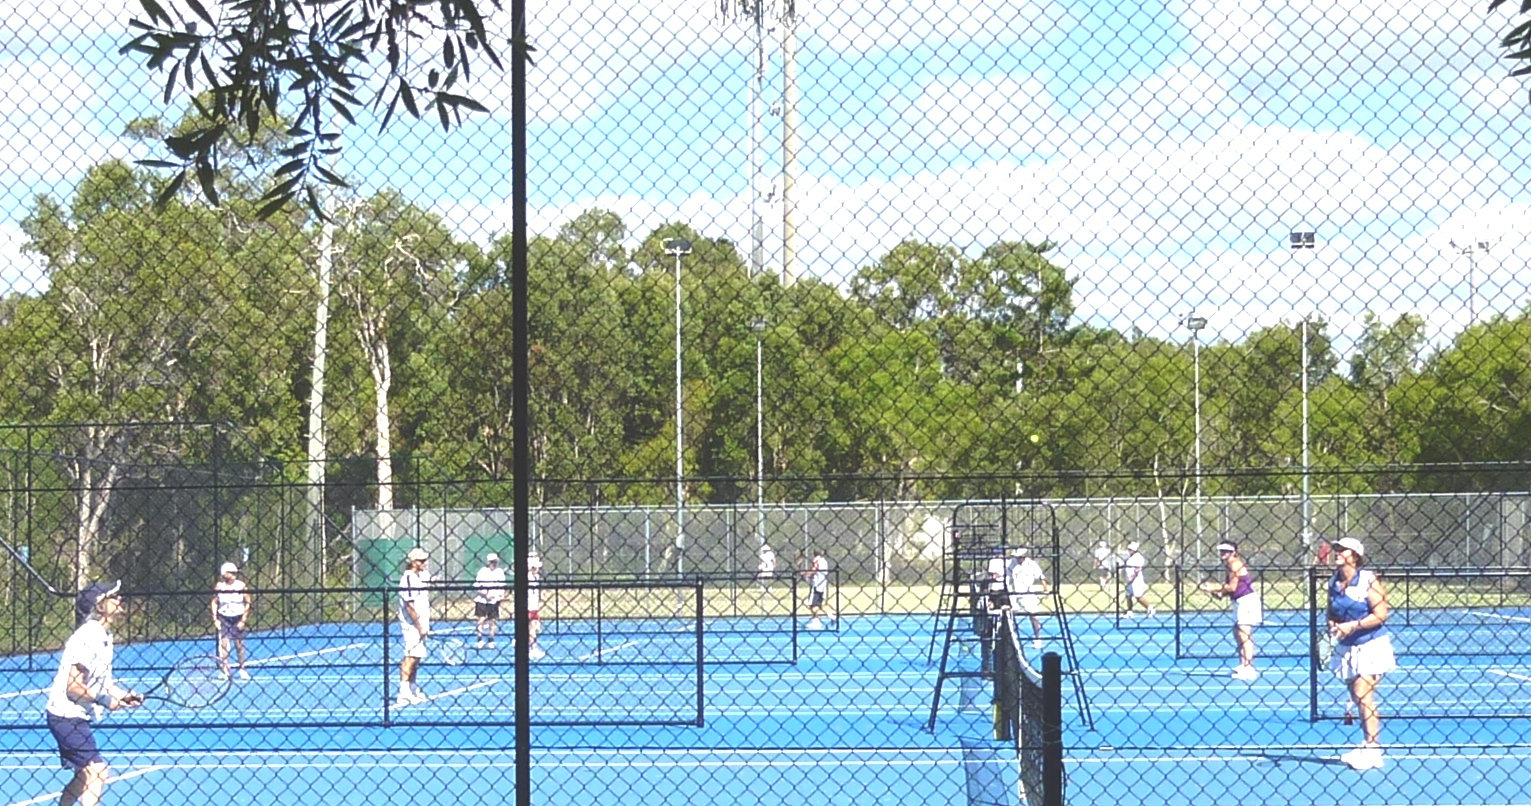 Our Courts from the East